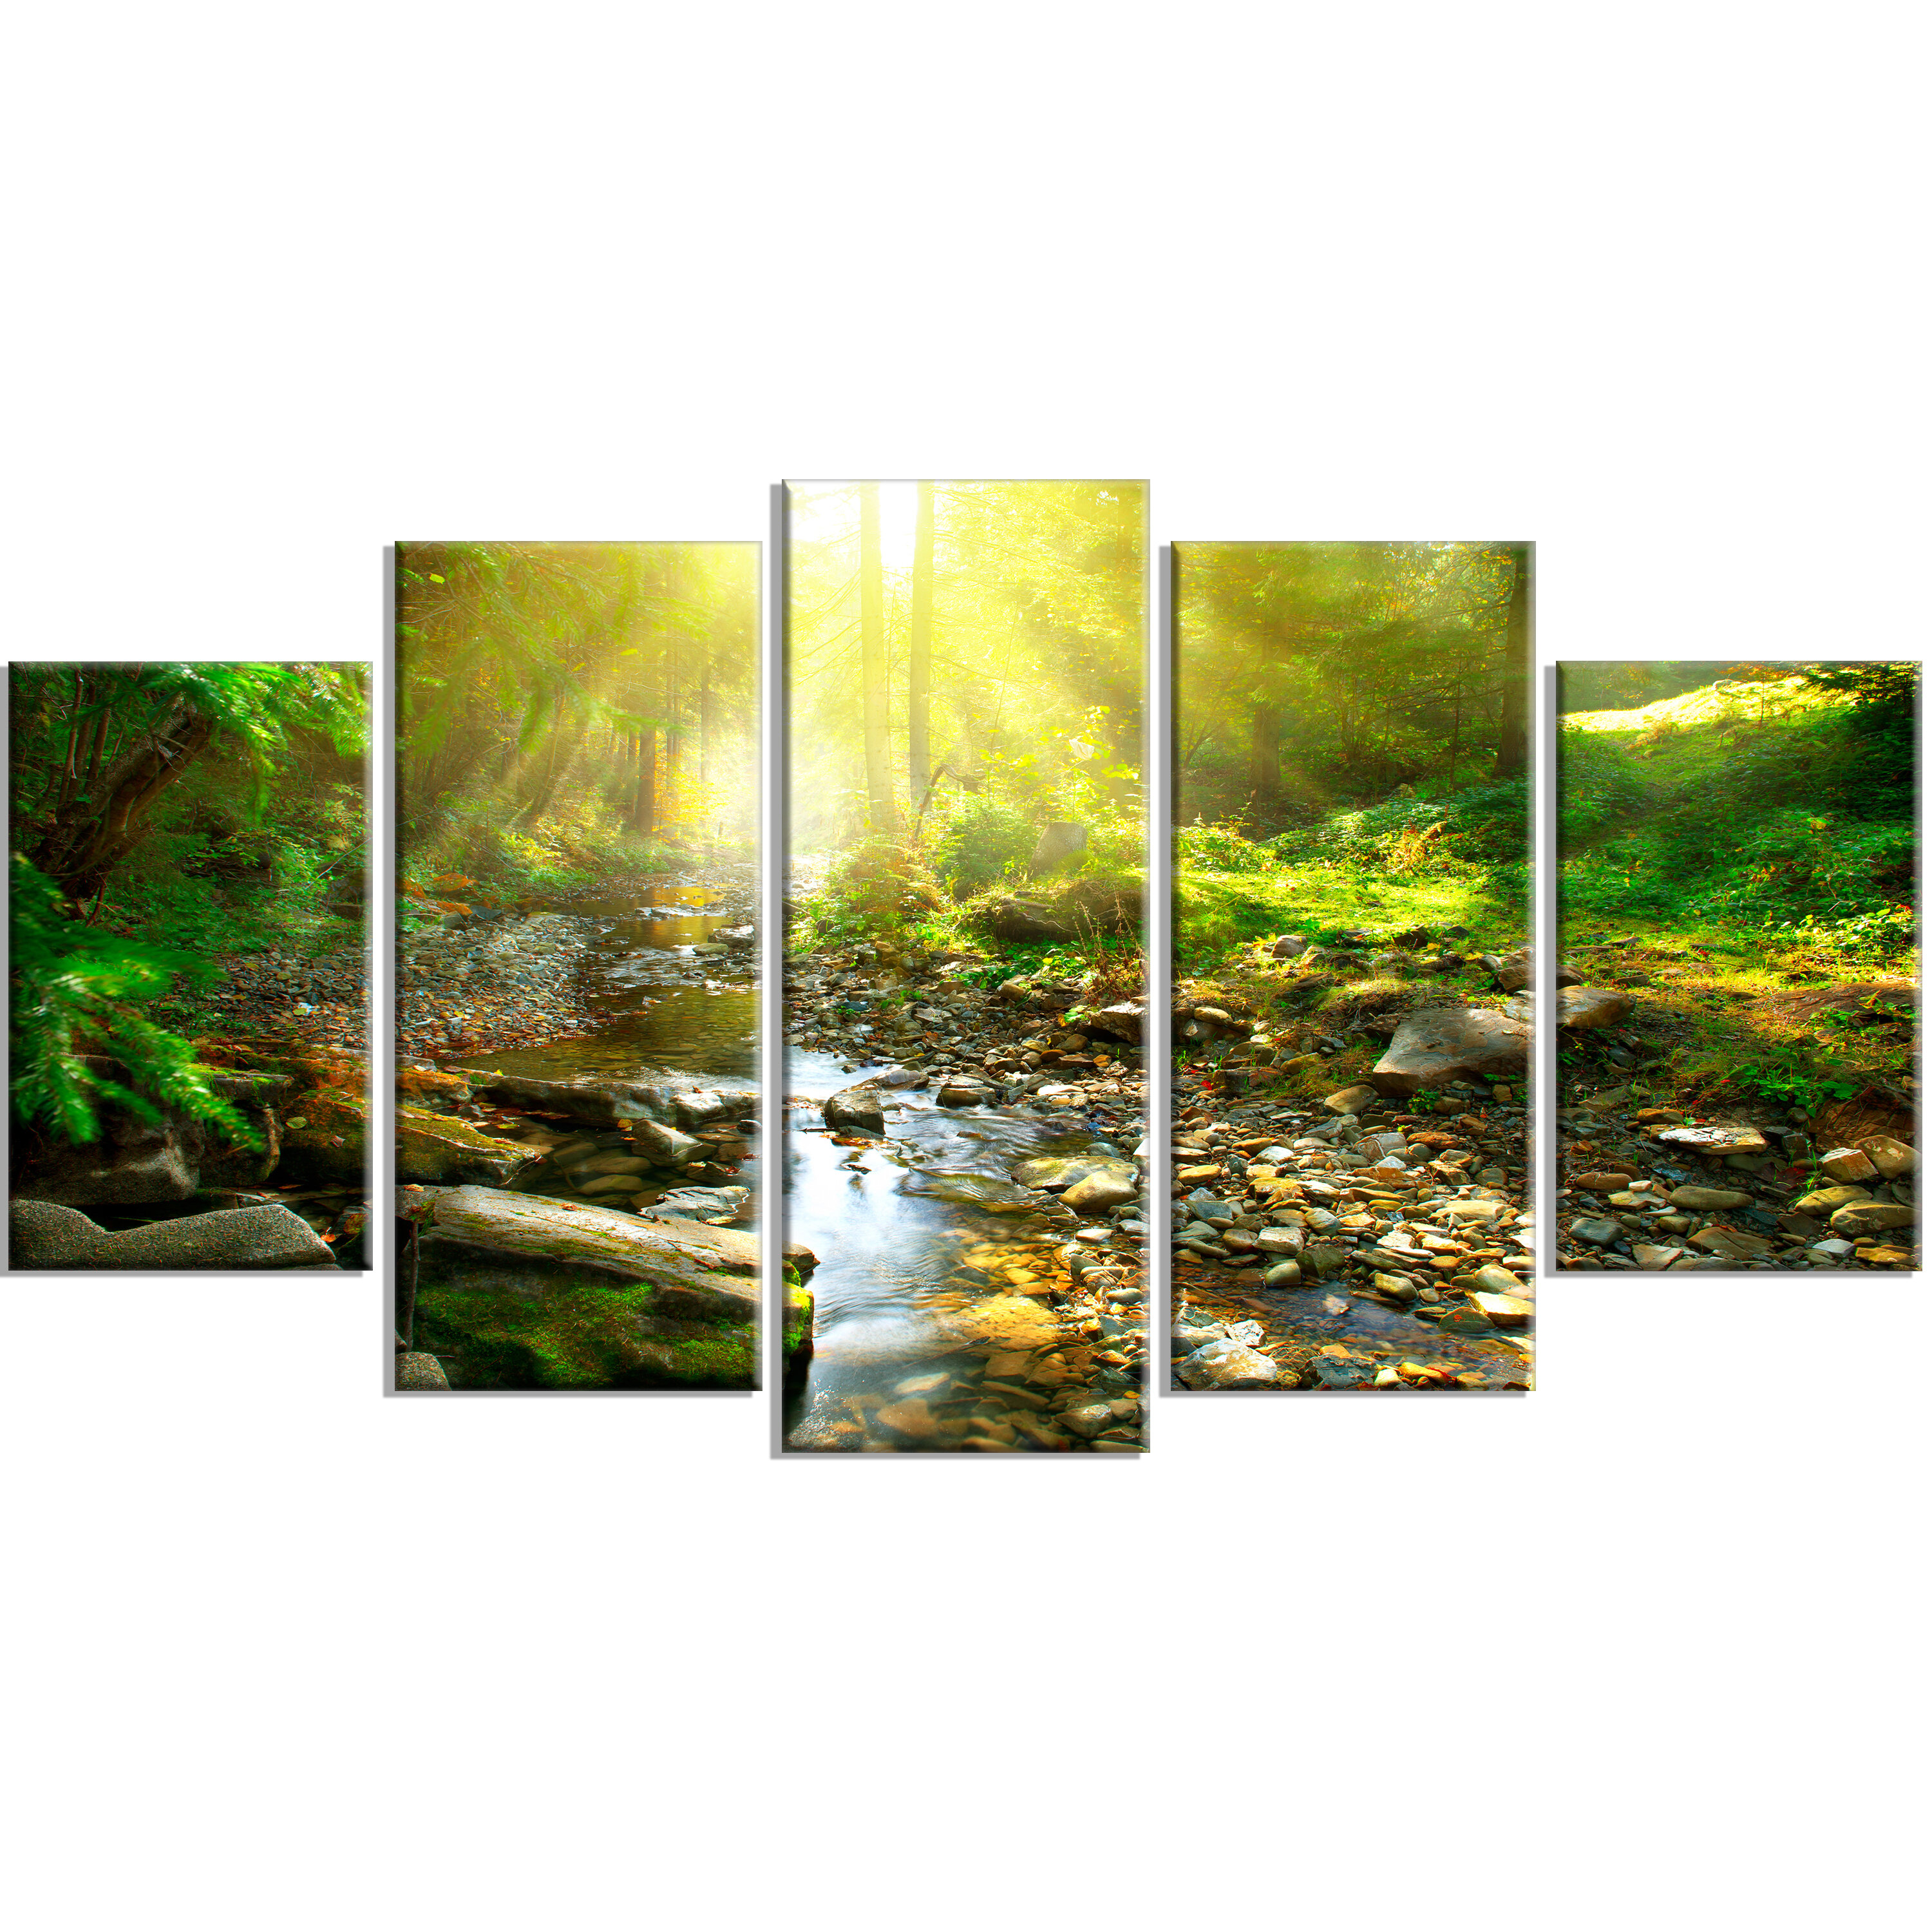 DesignArt \'Mountain Stream in Forest\' 5 Piece Wall Art on Wrapped ...